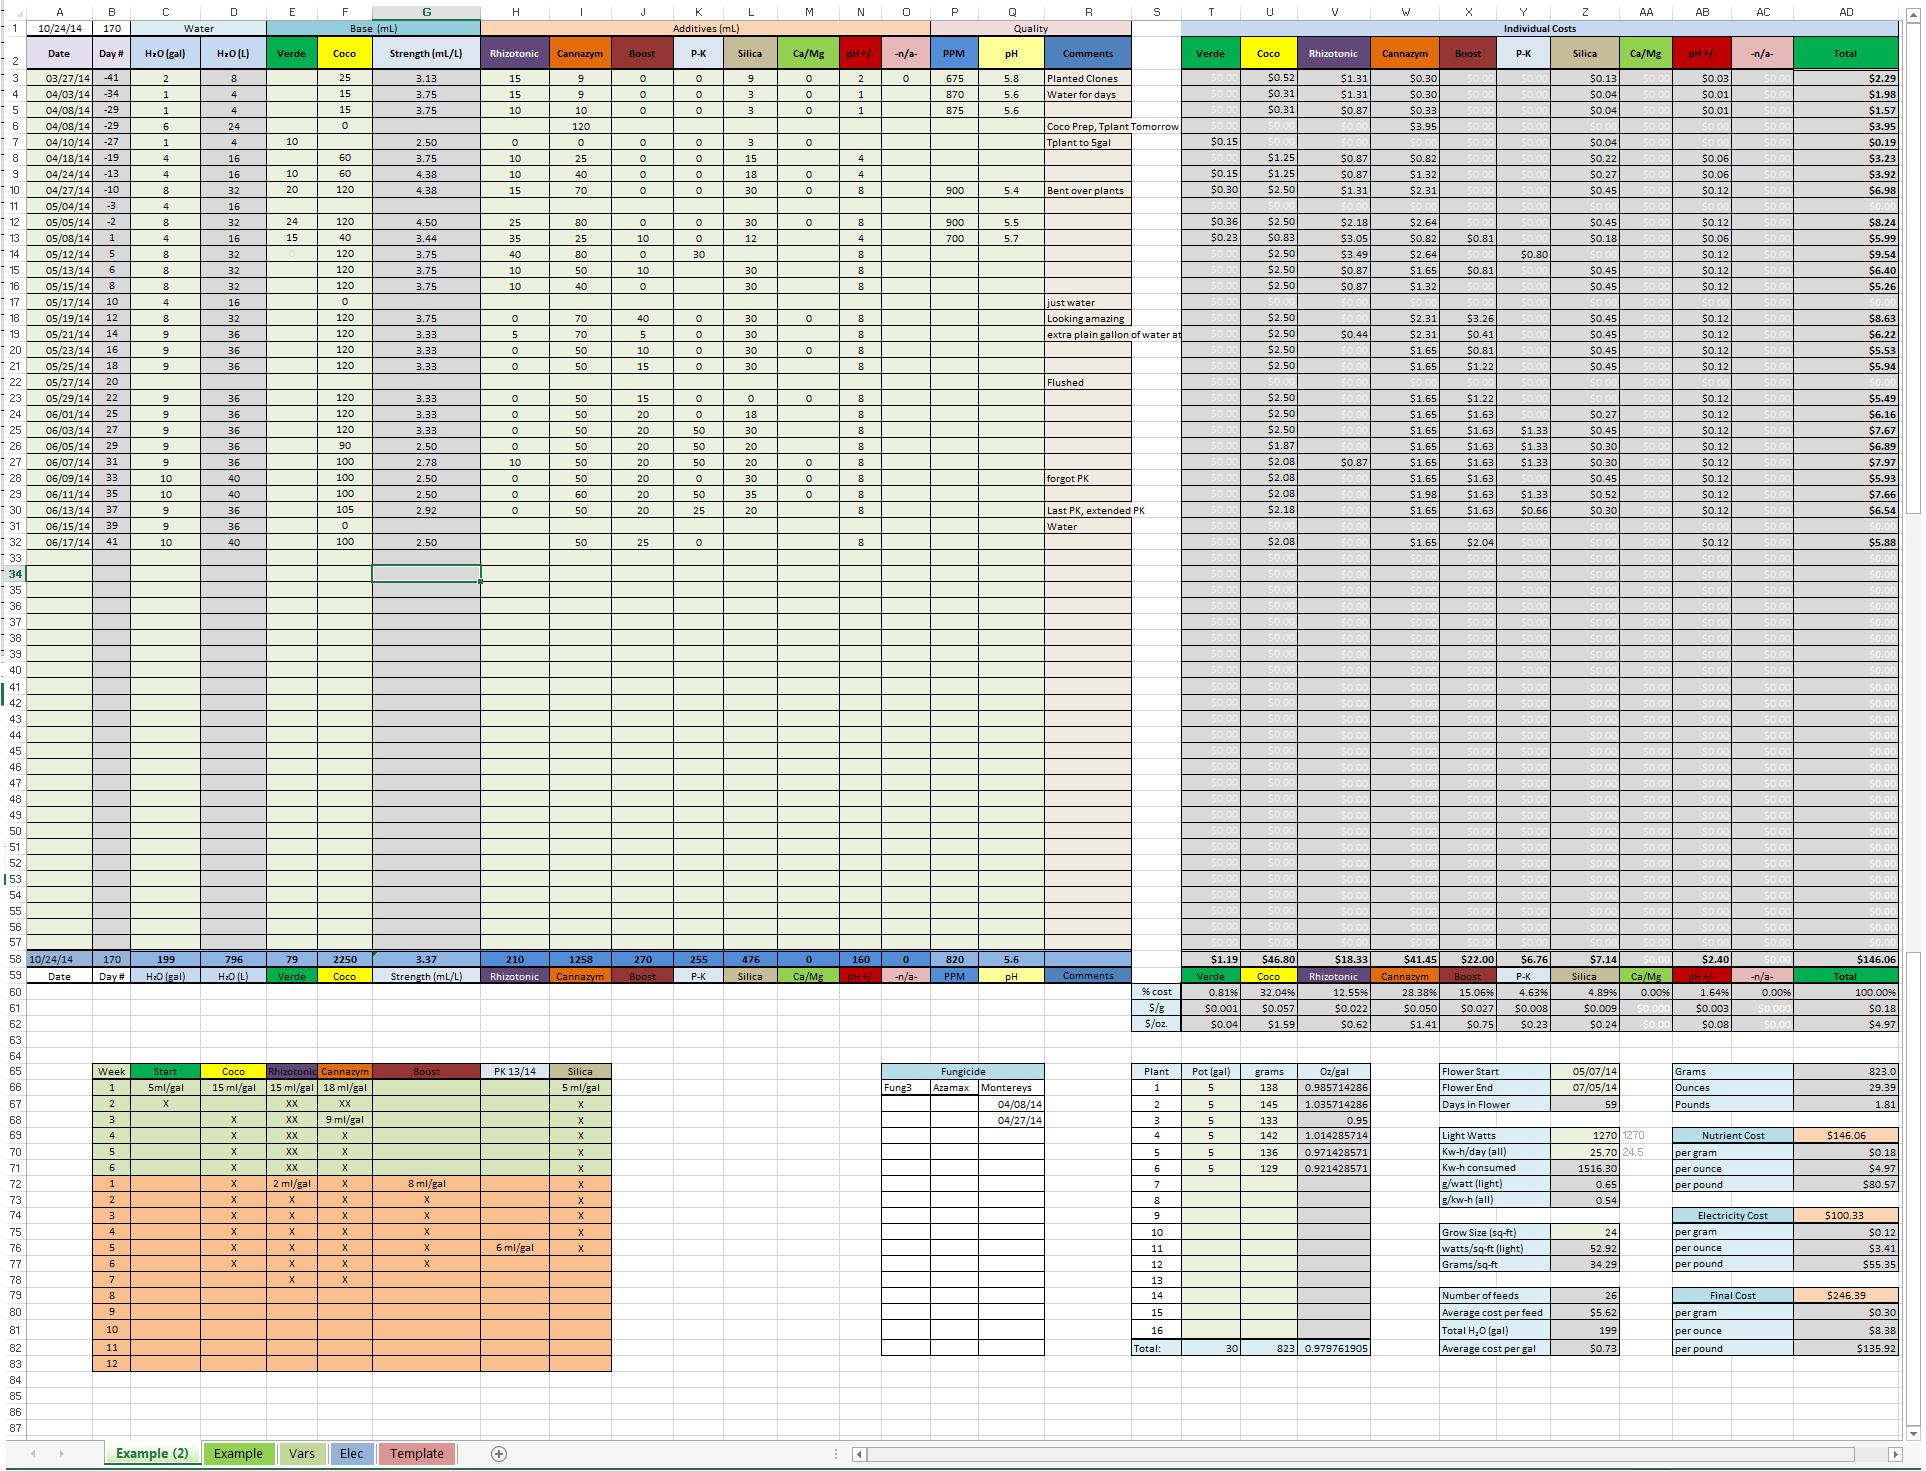 Hydroponic nutrient calculator spreadsheet google - House garden nutrient calculator ...